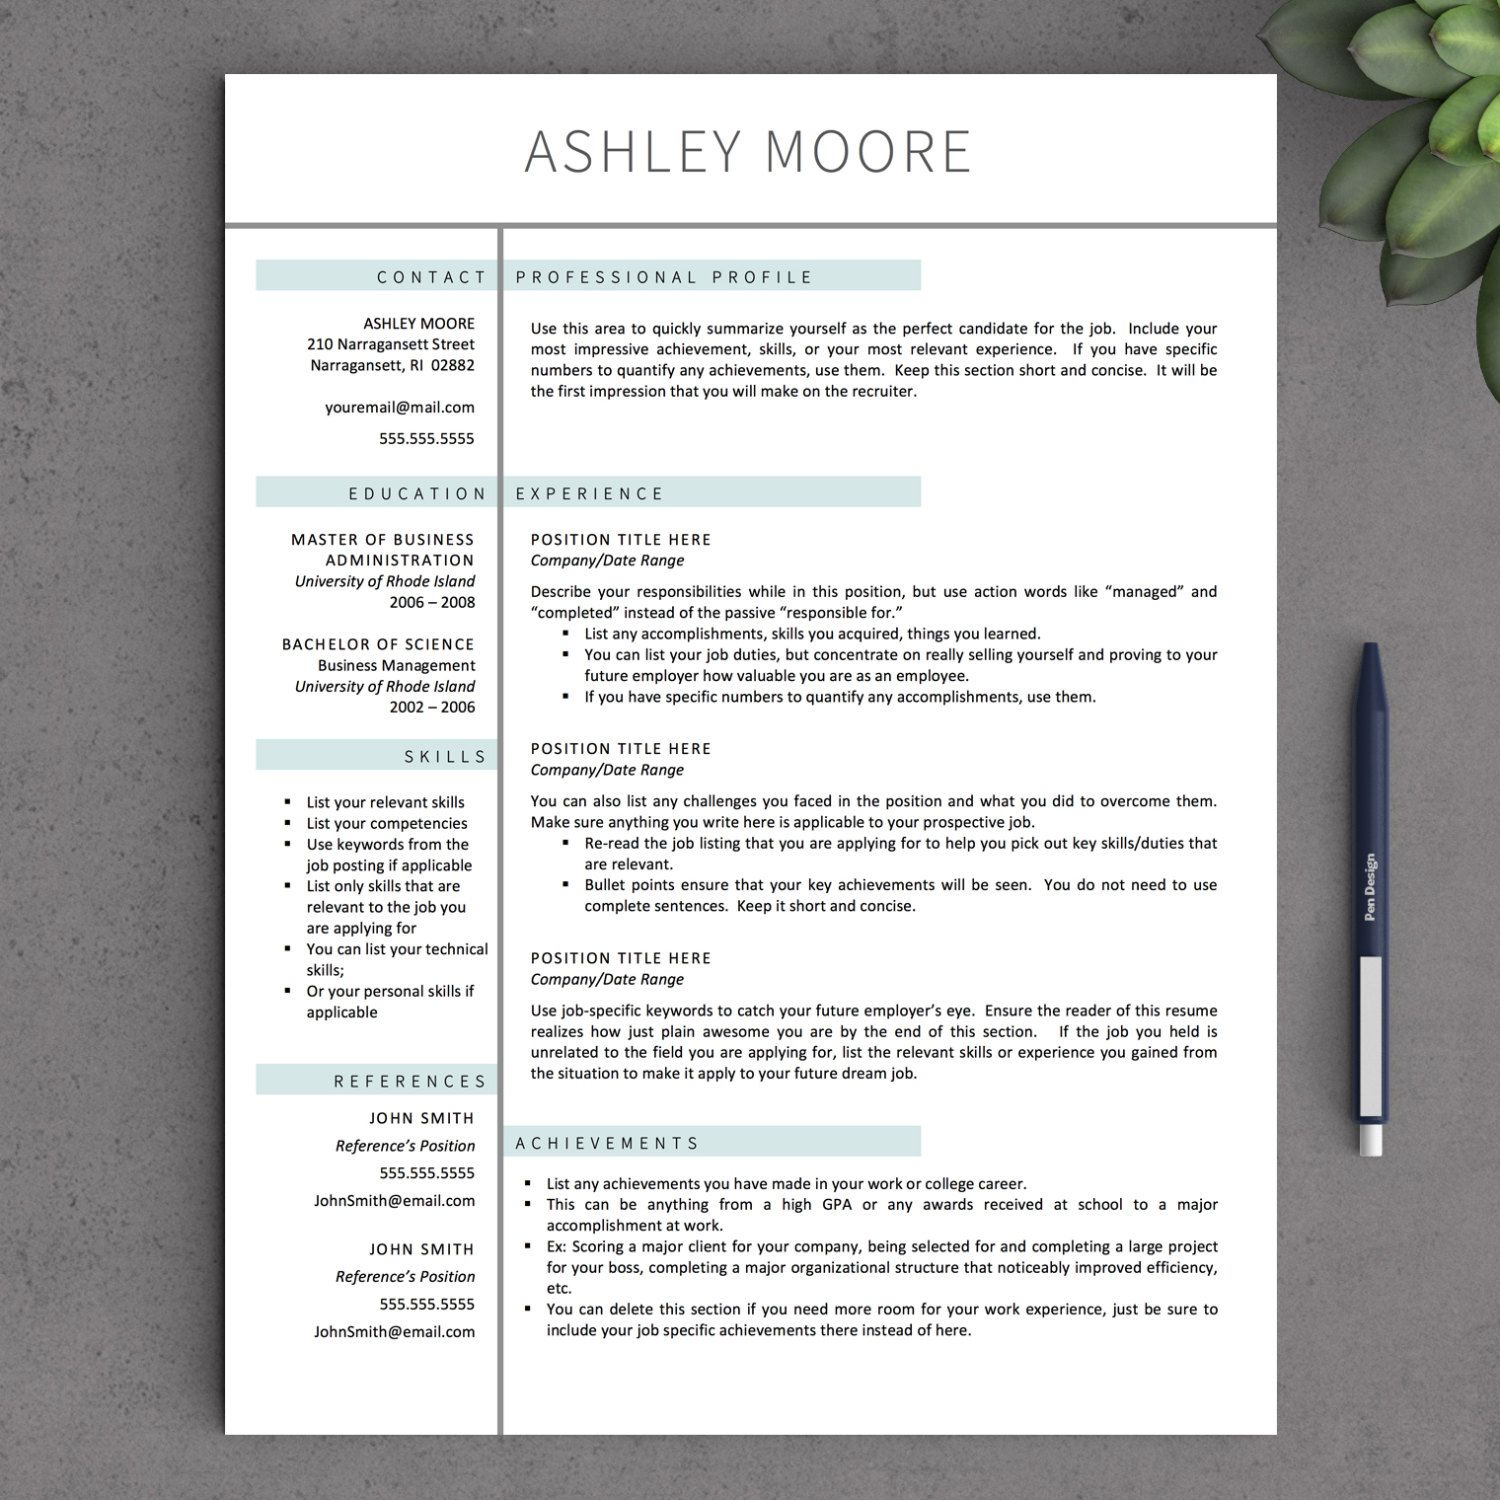 Attractive Apple Pages Resume Template Download Apple Pages Resume Template Download,  Appleu2026 Intended Resume Templates For Mac Pages